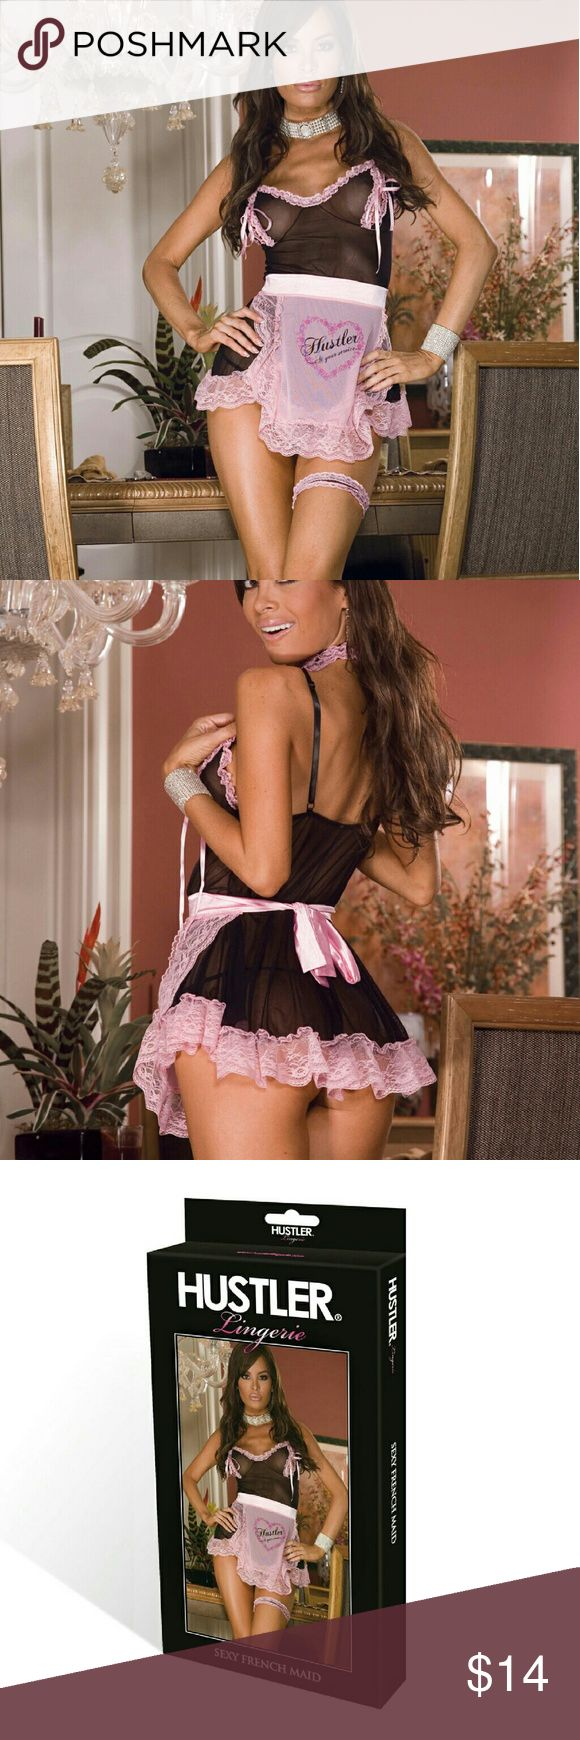 Hustler Lingeries 3PC Pink French Maid Costume Set Check into hotel Hustler in this sexy bedroom costume that maid to order! Revealing mesh costar with pink lace trim and pink satin ribbons. Peek a boo teddy come with mesh and lace choker and printed mesh lace apron. Fully adjustable bra straps. Come with matching g-string. One size fit most  (4-10) 90% polyester 10% Spandex. Hustler Lingeries  Skirts Skirt Sets